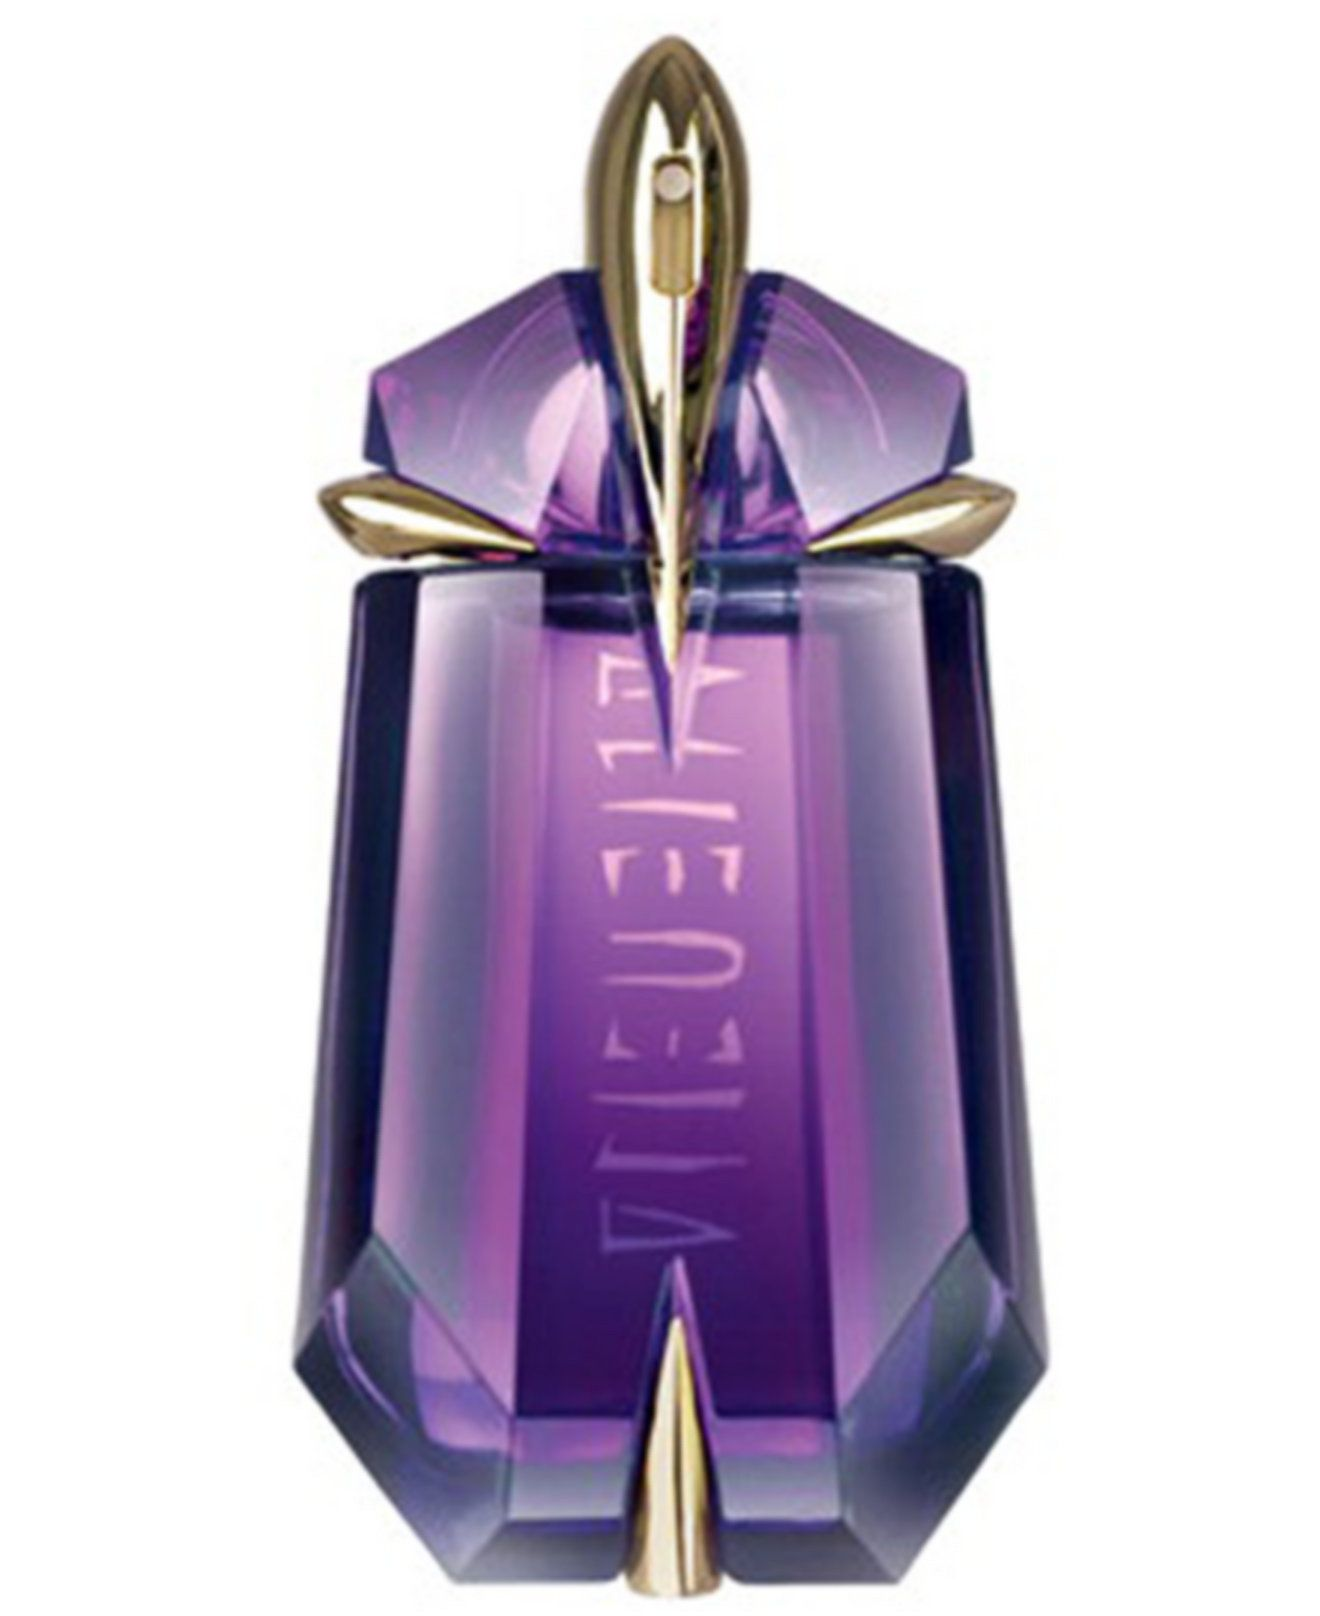 alien by fragrance collection for women thierry mugler. Black Bedroom Furniture Sets. Home Design Ideas